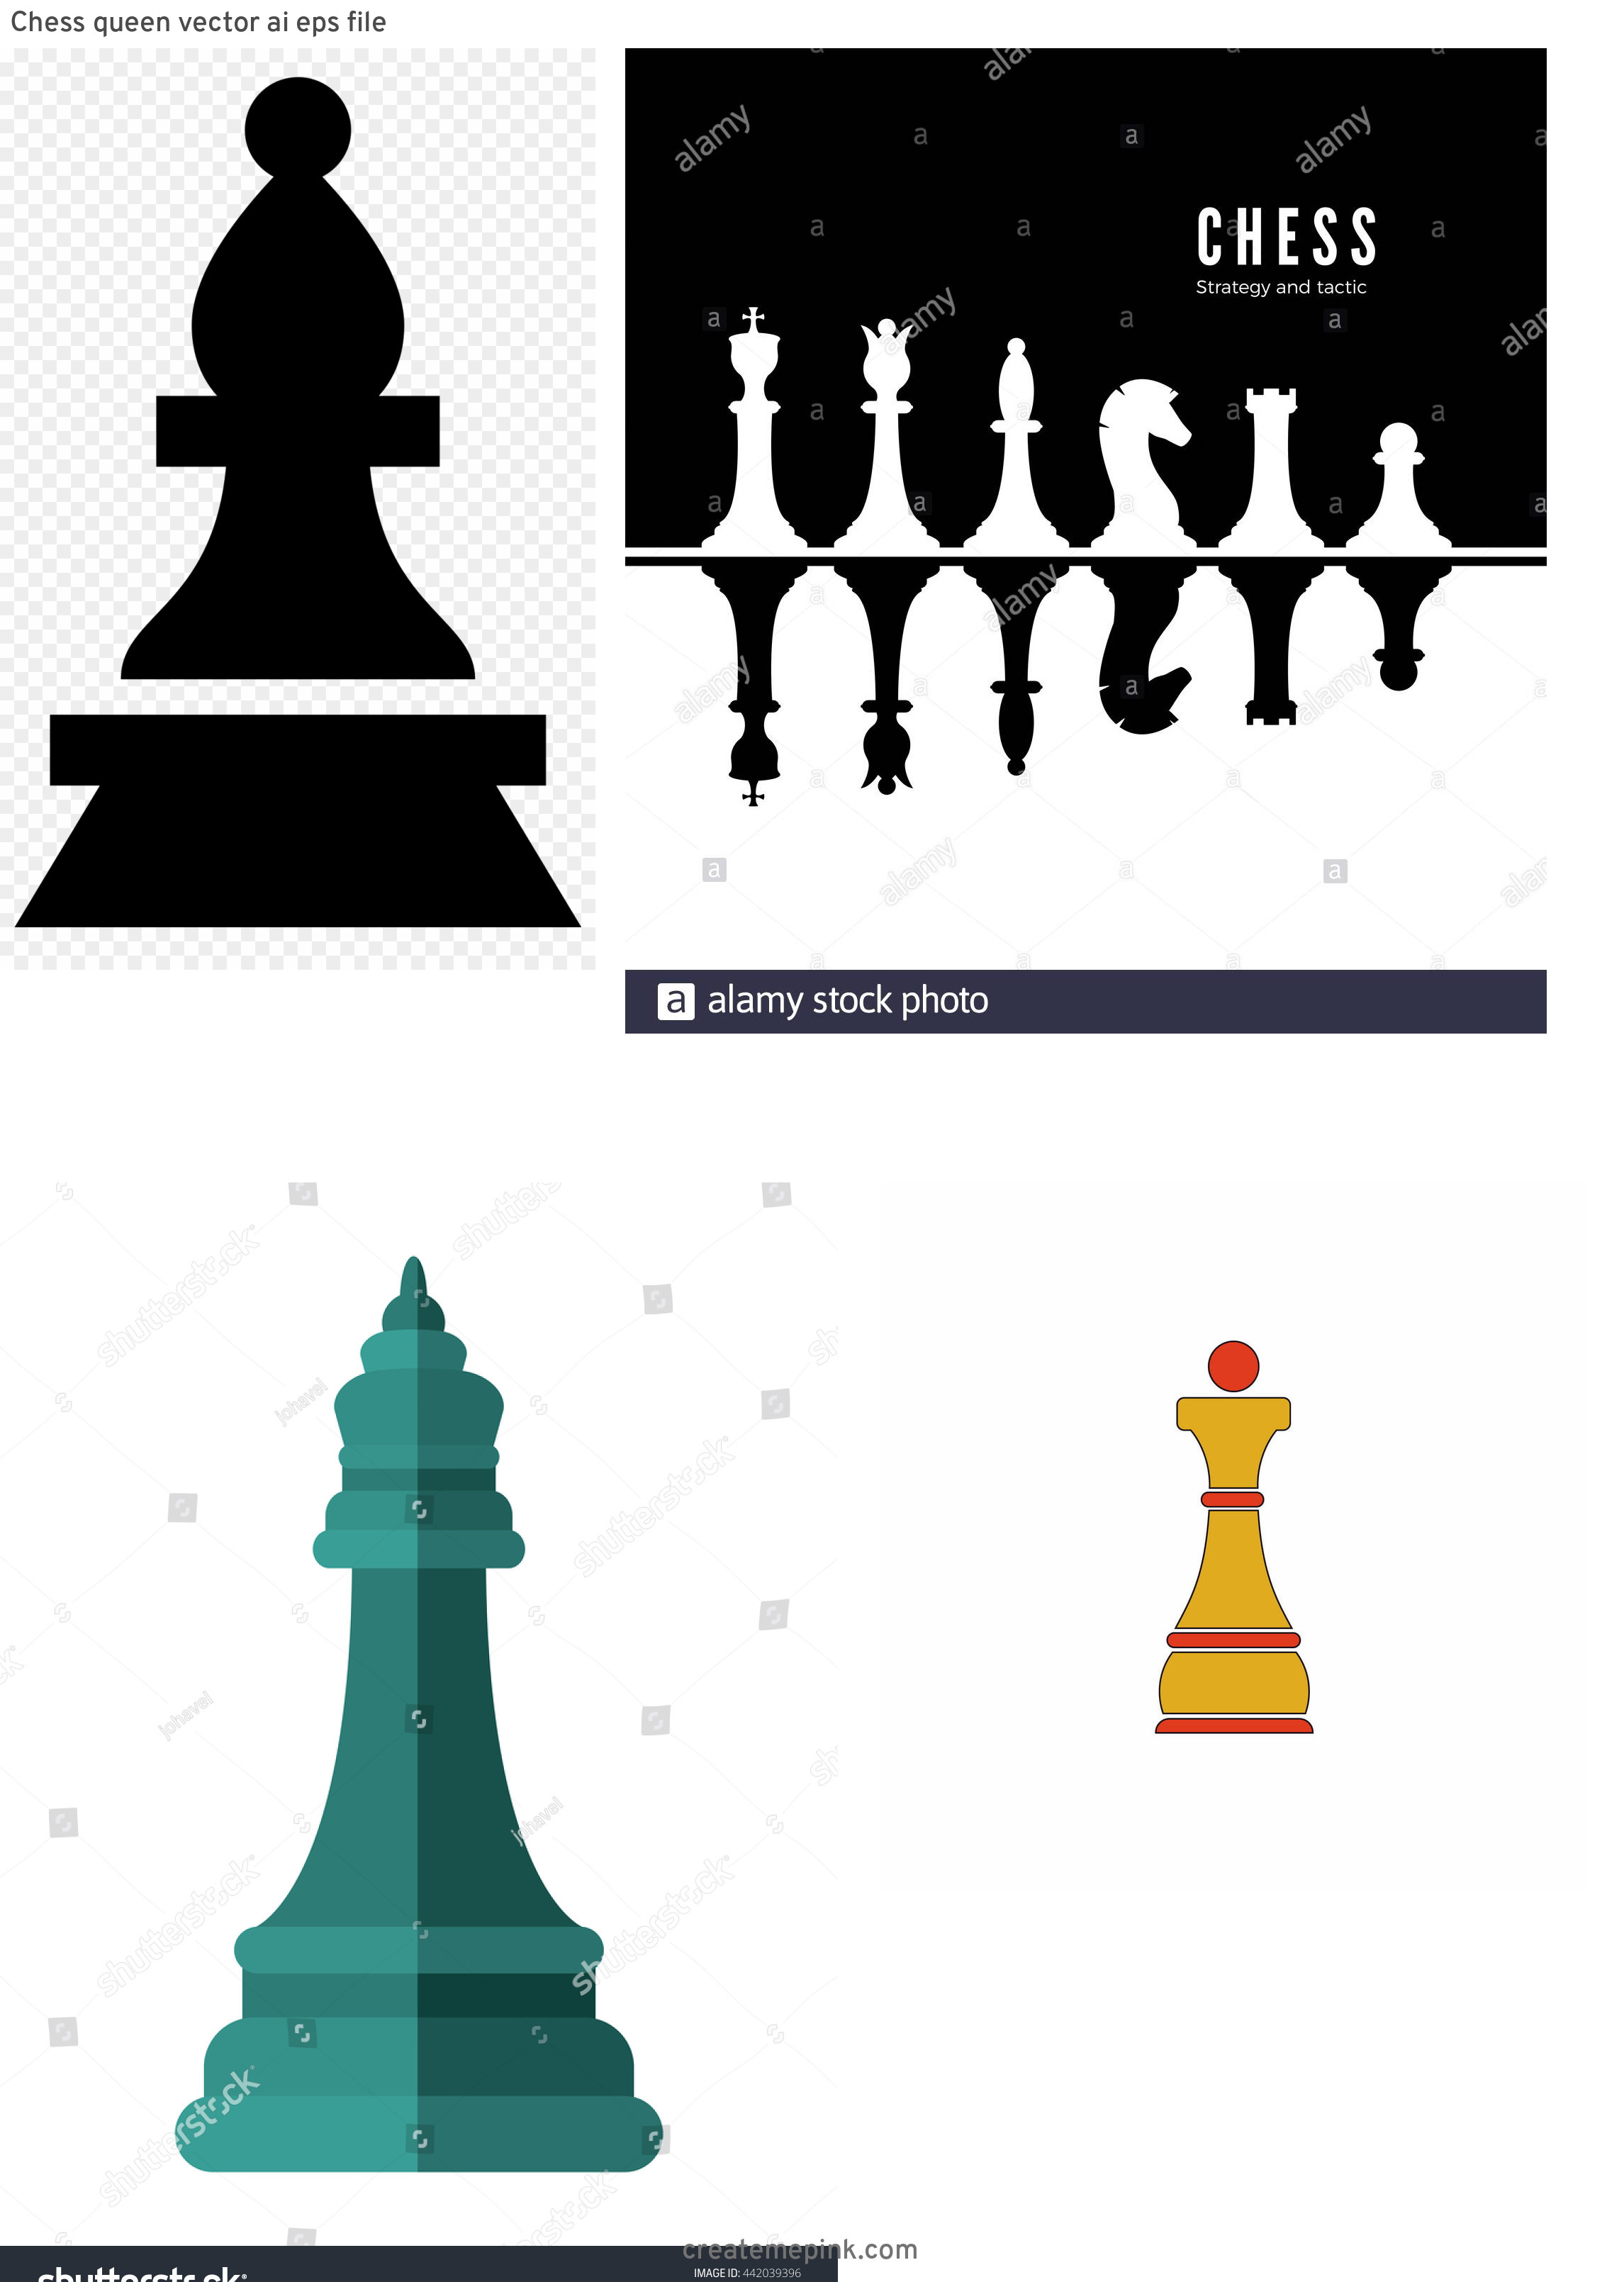 Chess Vector Graphic: Chess Queen Vector Ai Eps File